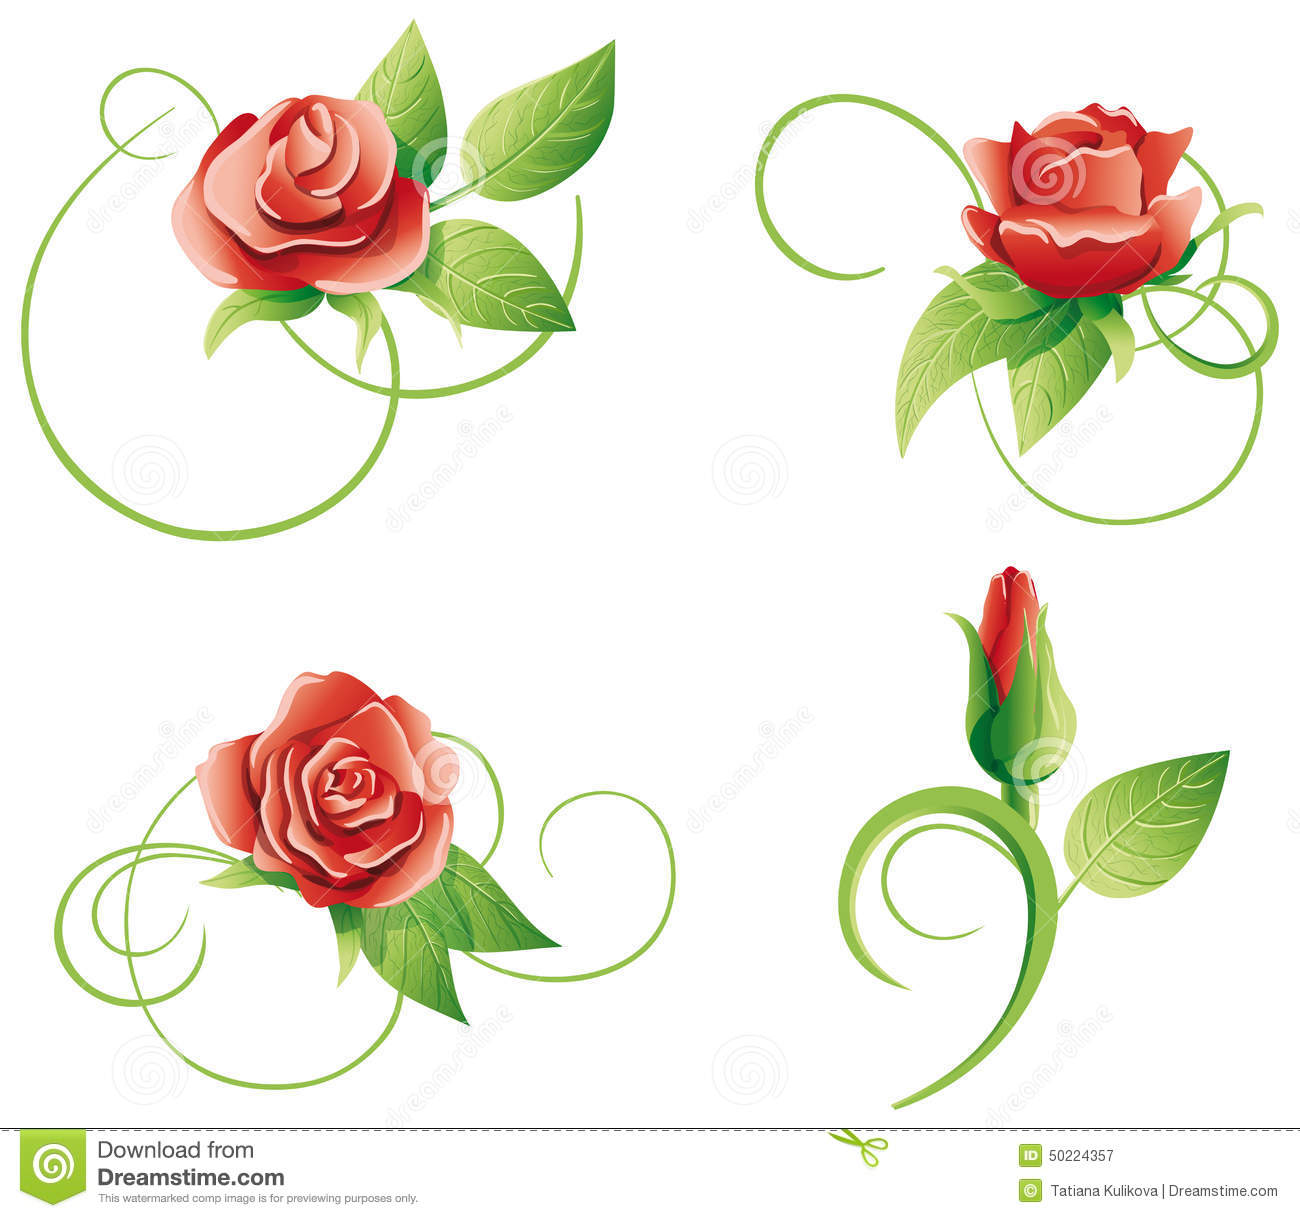 swirly roses background bouquet - photo #8